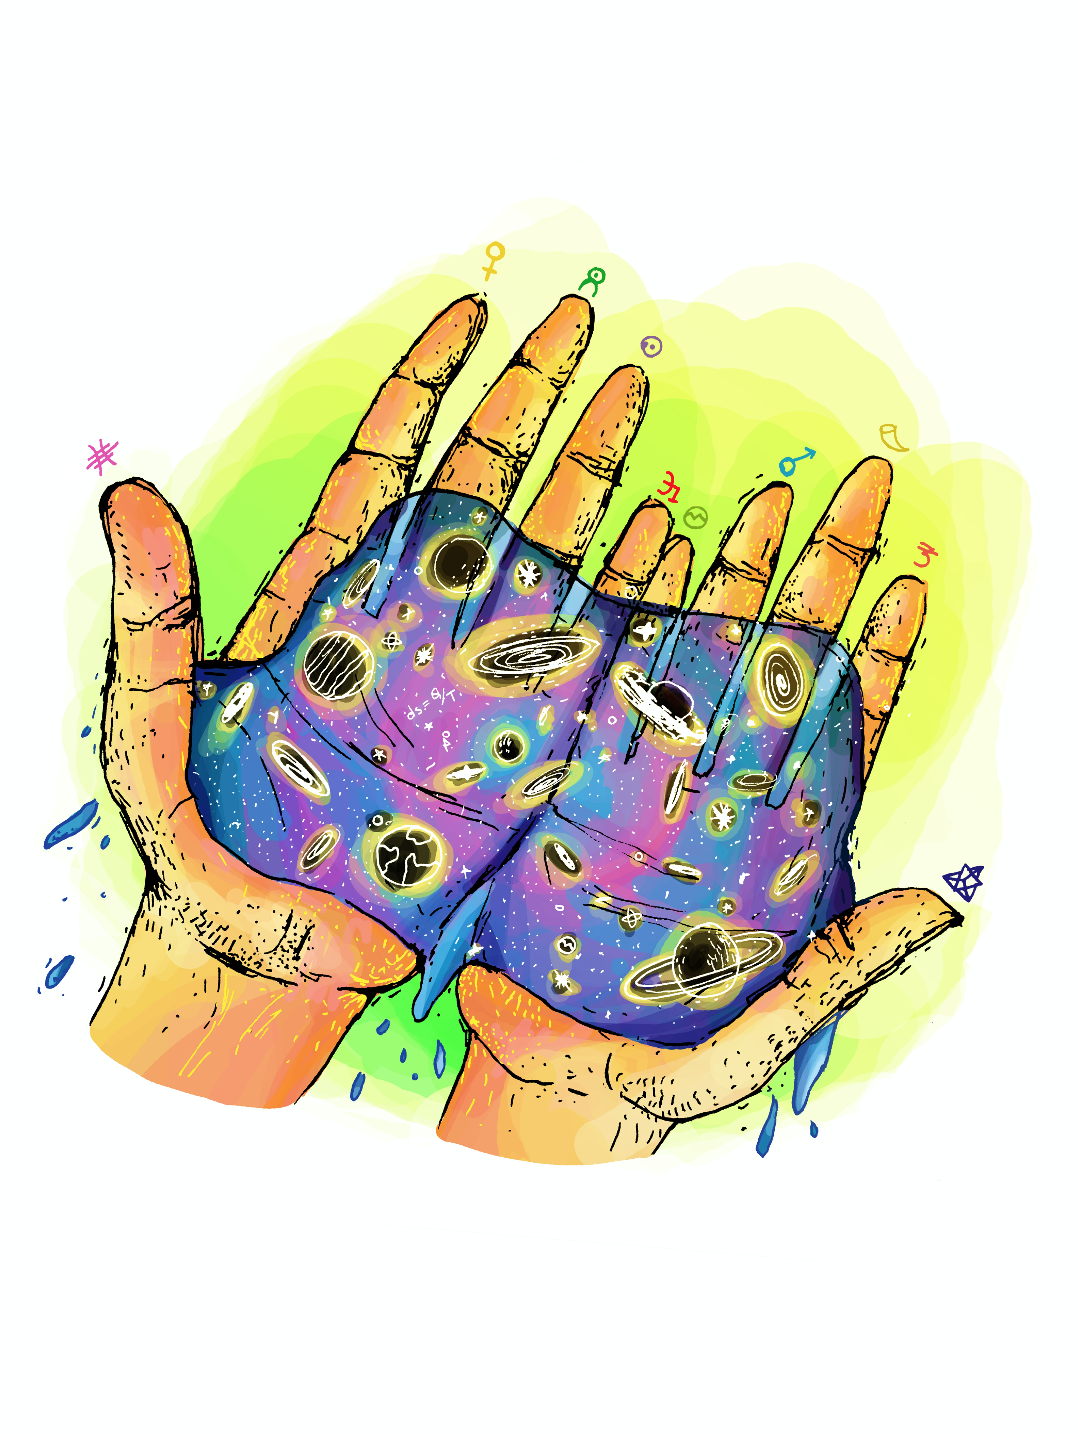 Space hand